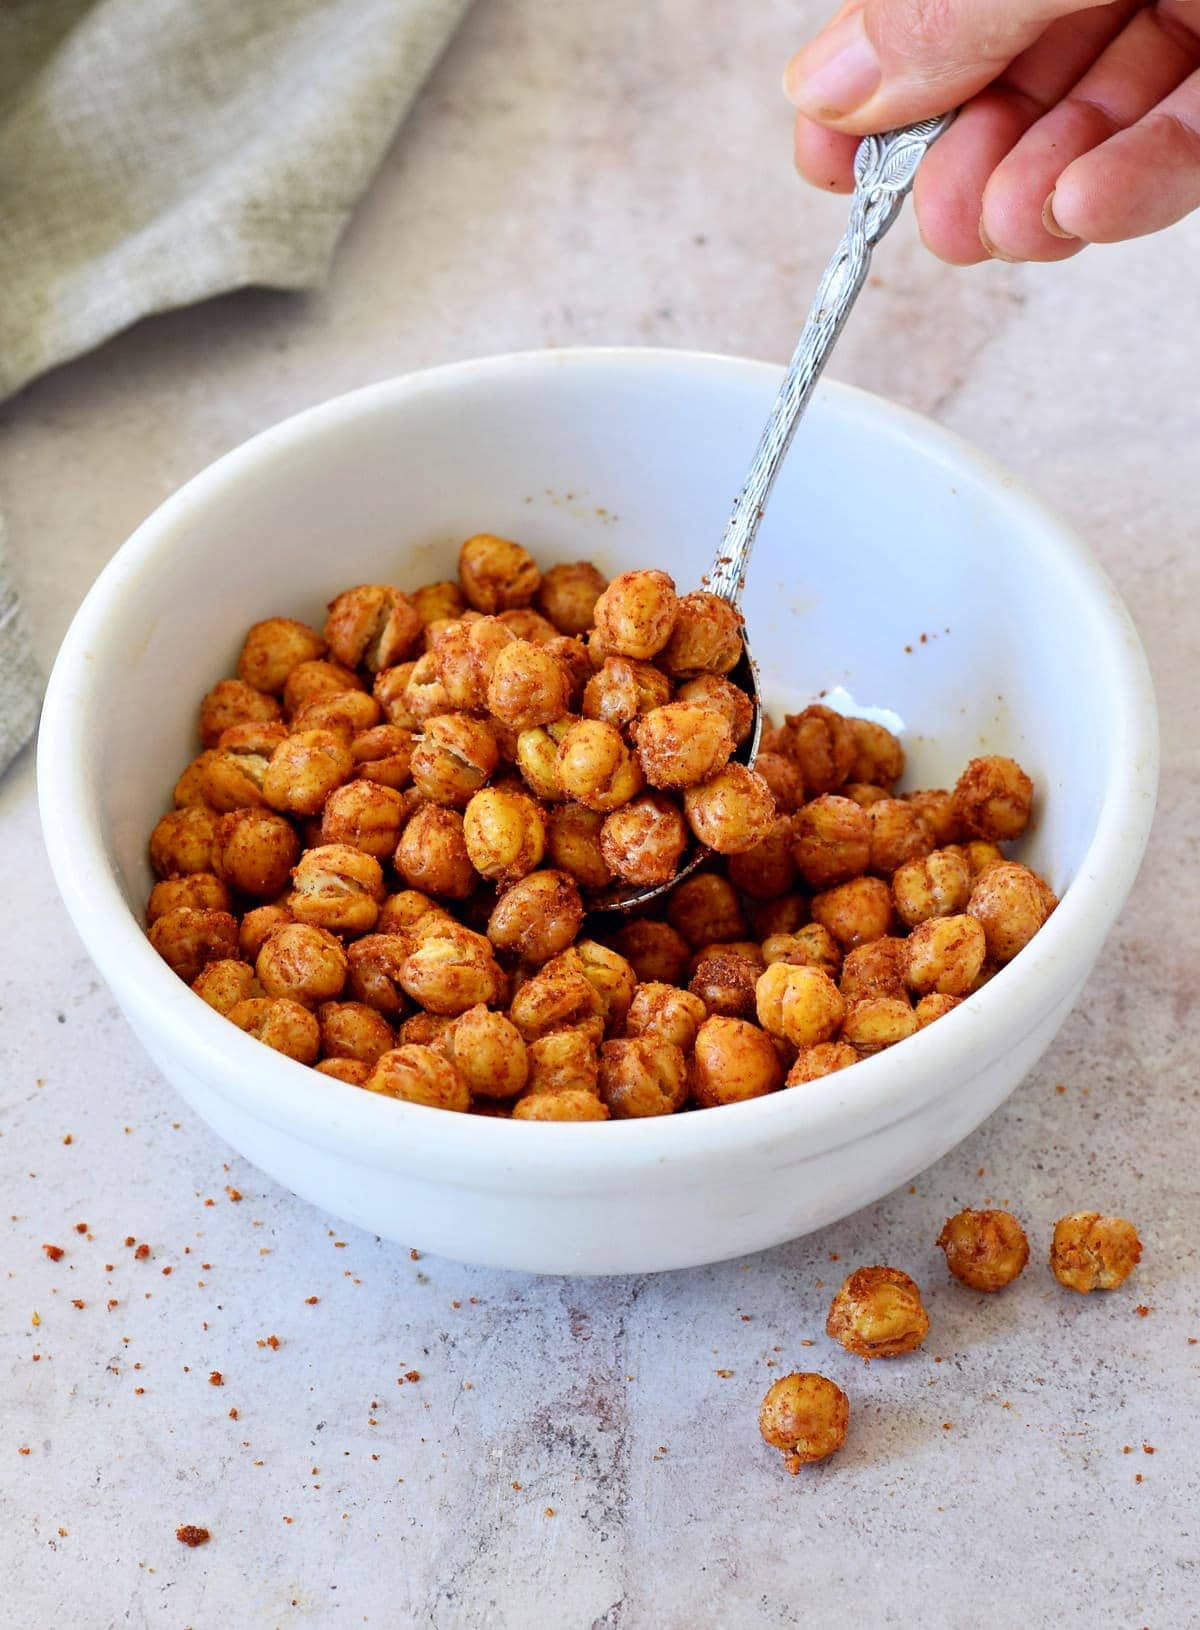 roasted chickpeas in white bowl with spoon in hand